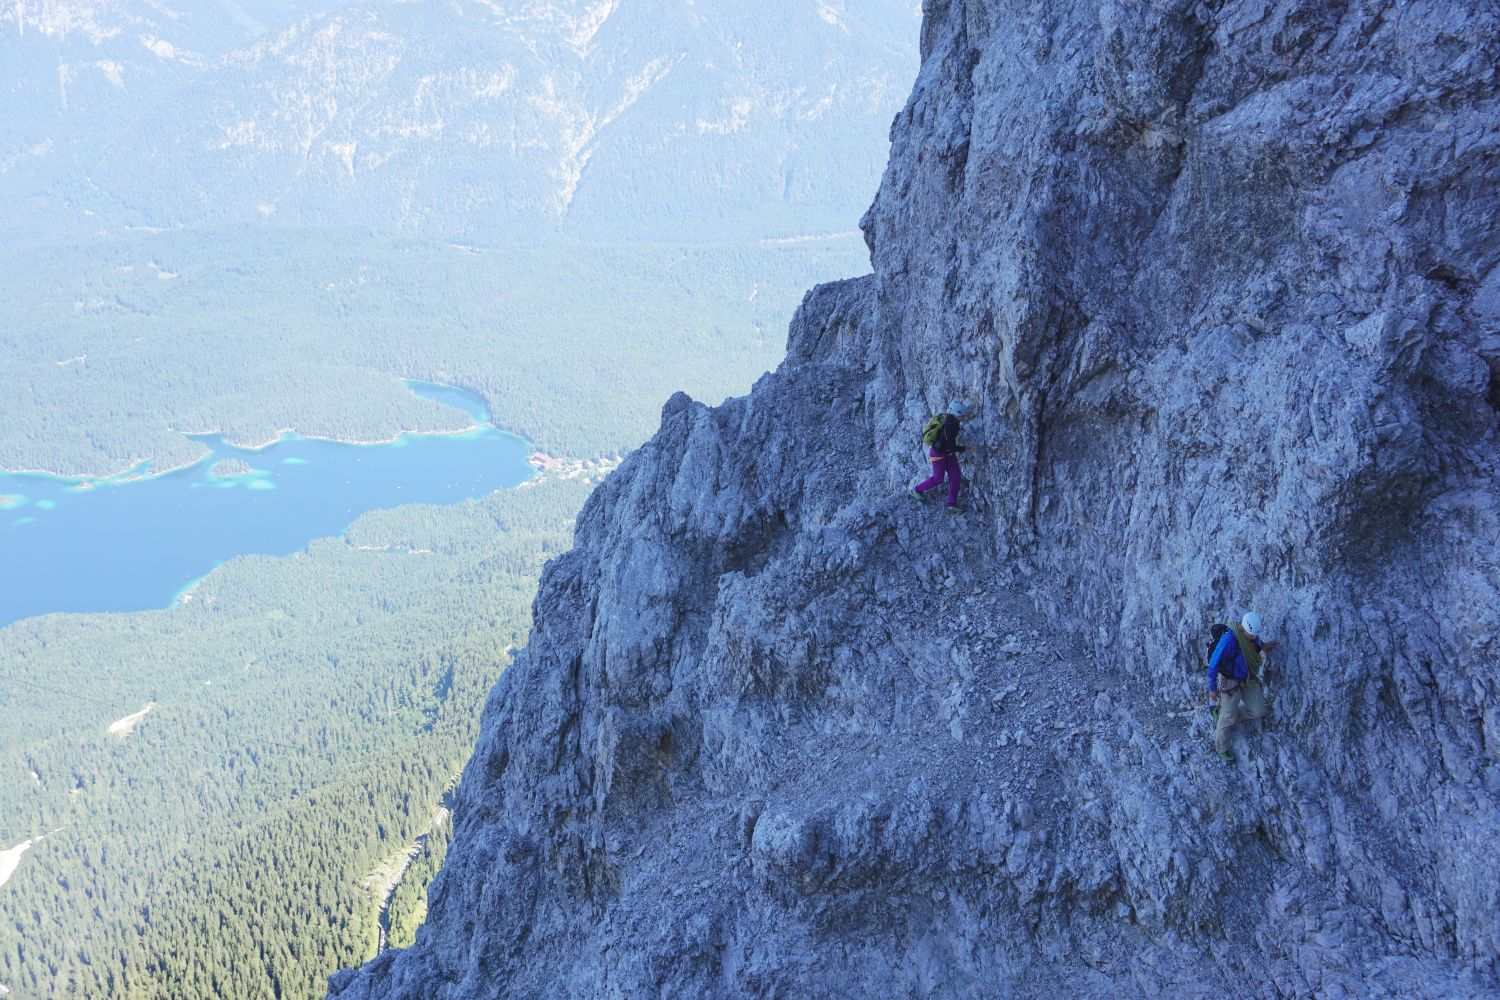 Klettersteig Eisenzeit : Klettersteig eisenzeit zugspitze nord west wand youtube